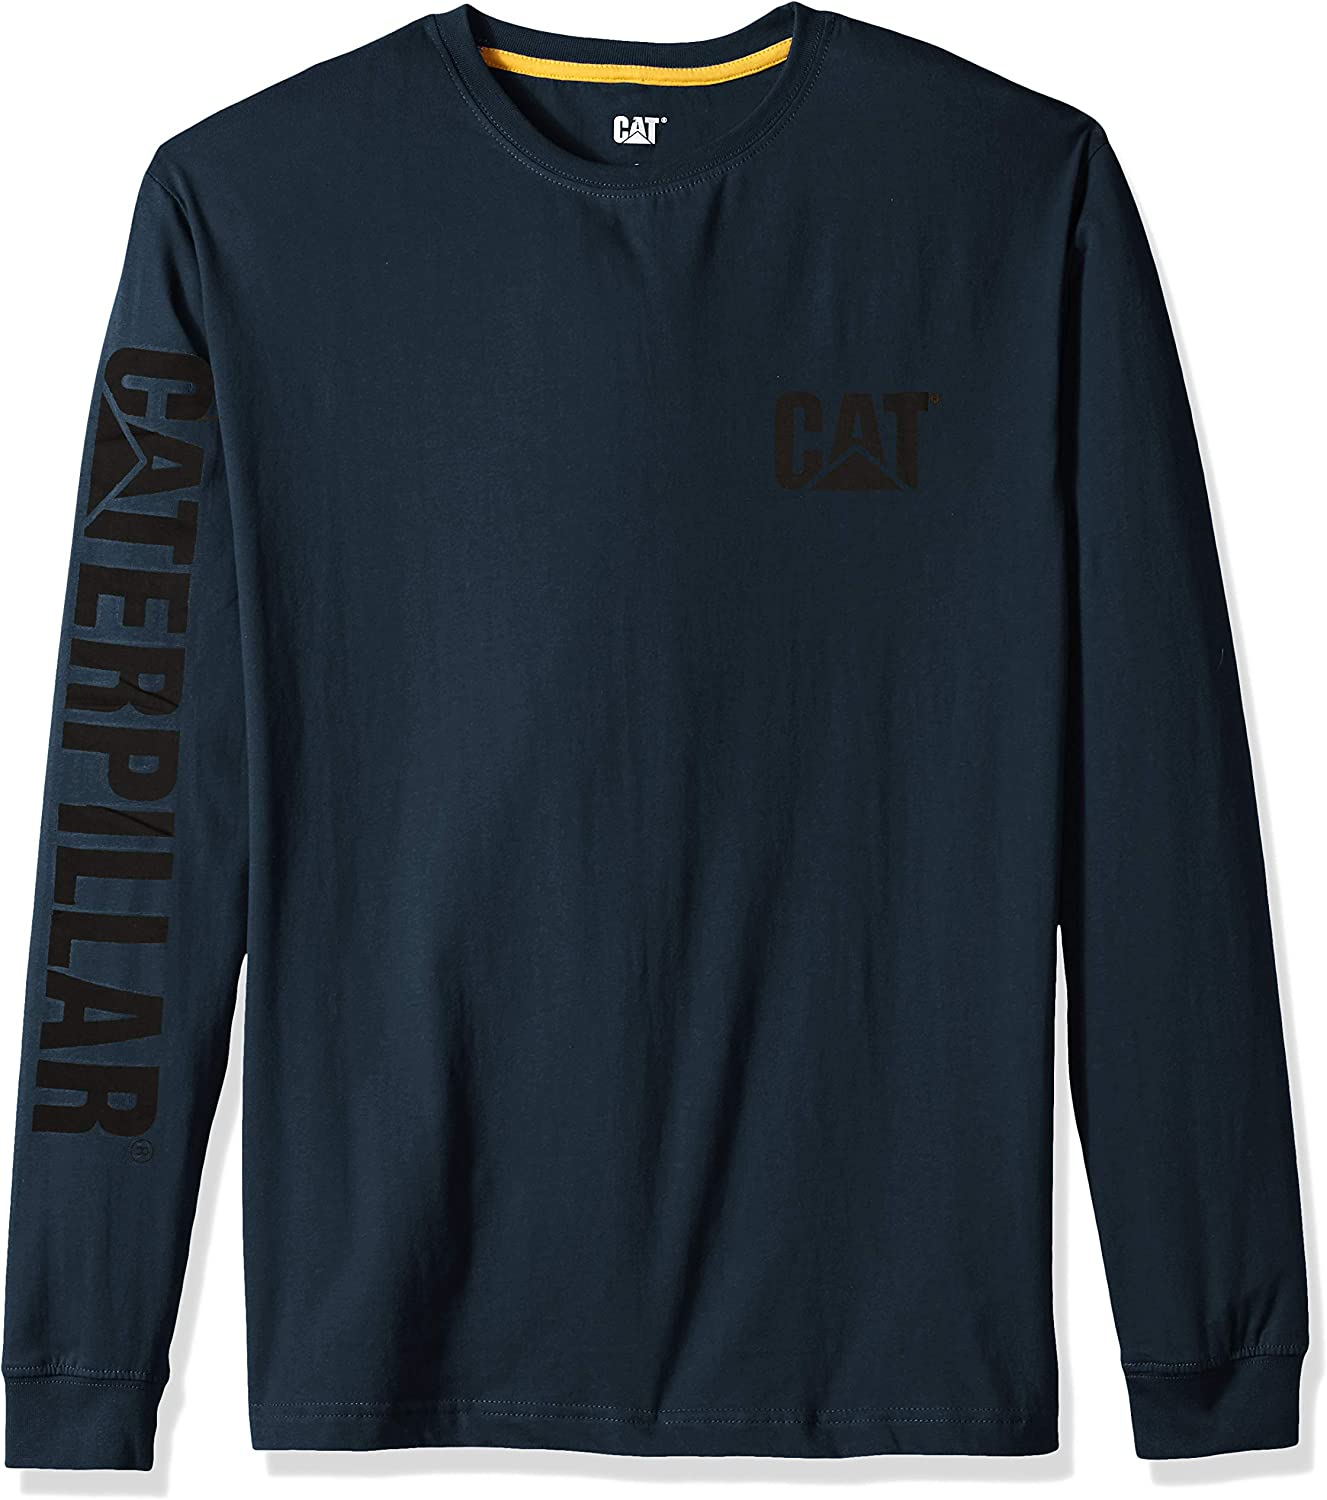 Regular and Big /& Tall Sizes Caterpillar Mens Trademark Banner Long Sleeve T-Shirt